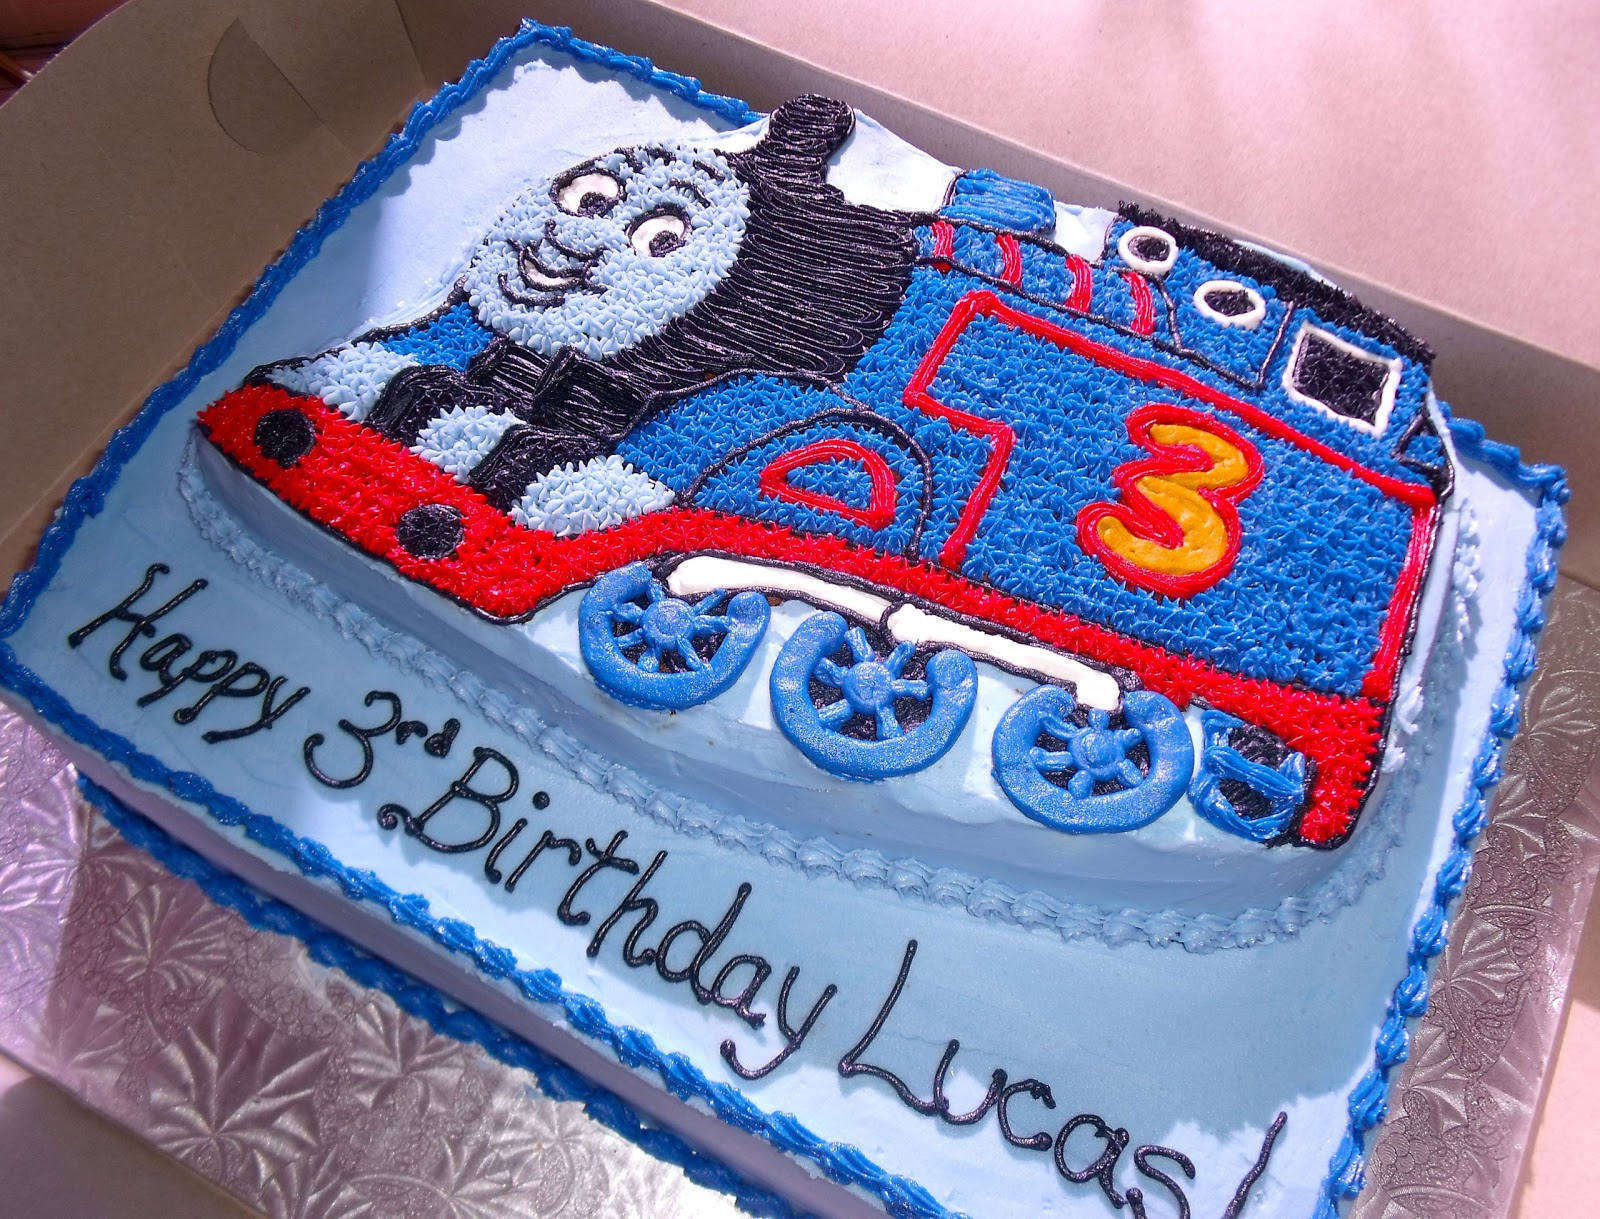 Thomas the Train cake be equipped birthday cake train designs be equipped thomas and friends cake design